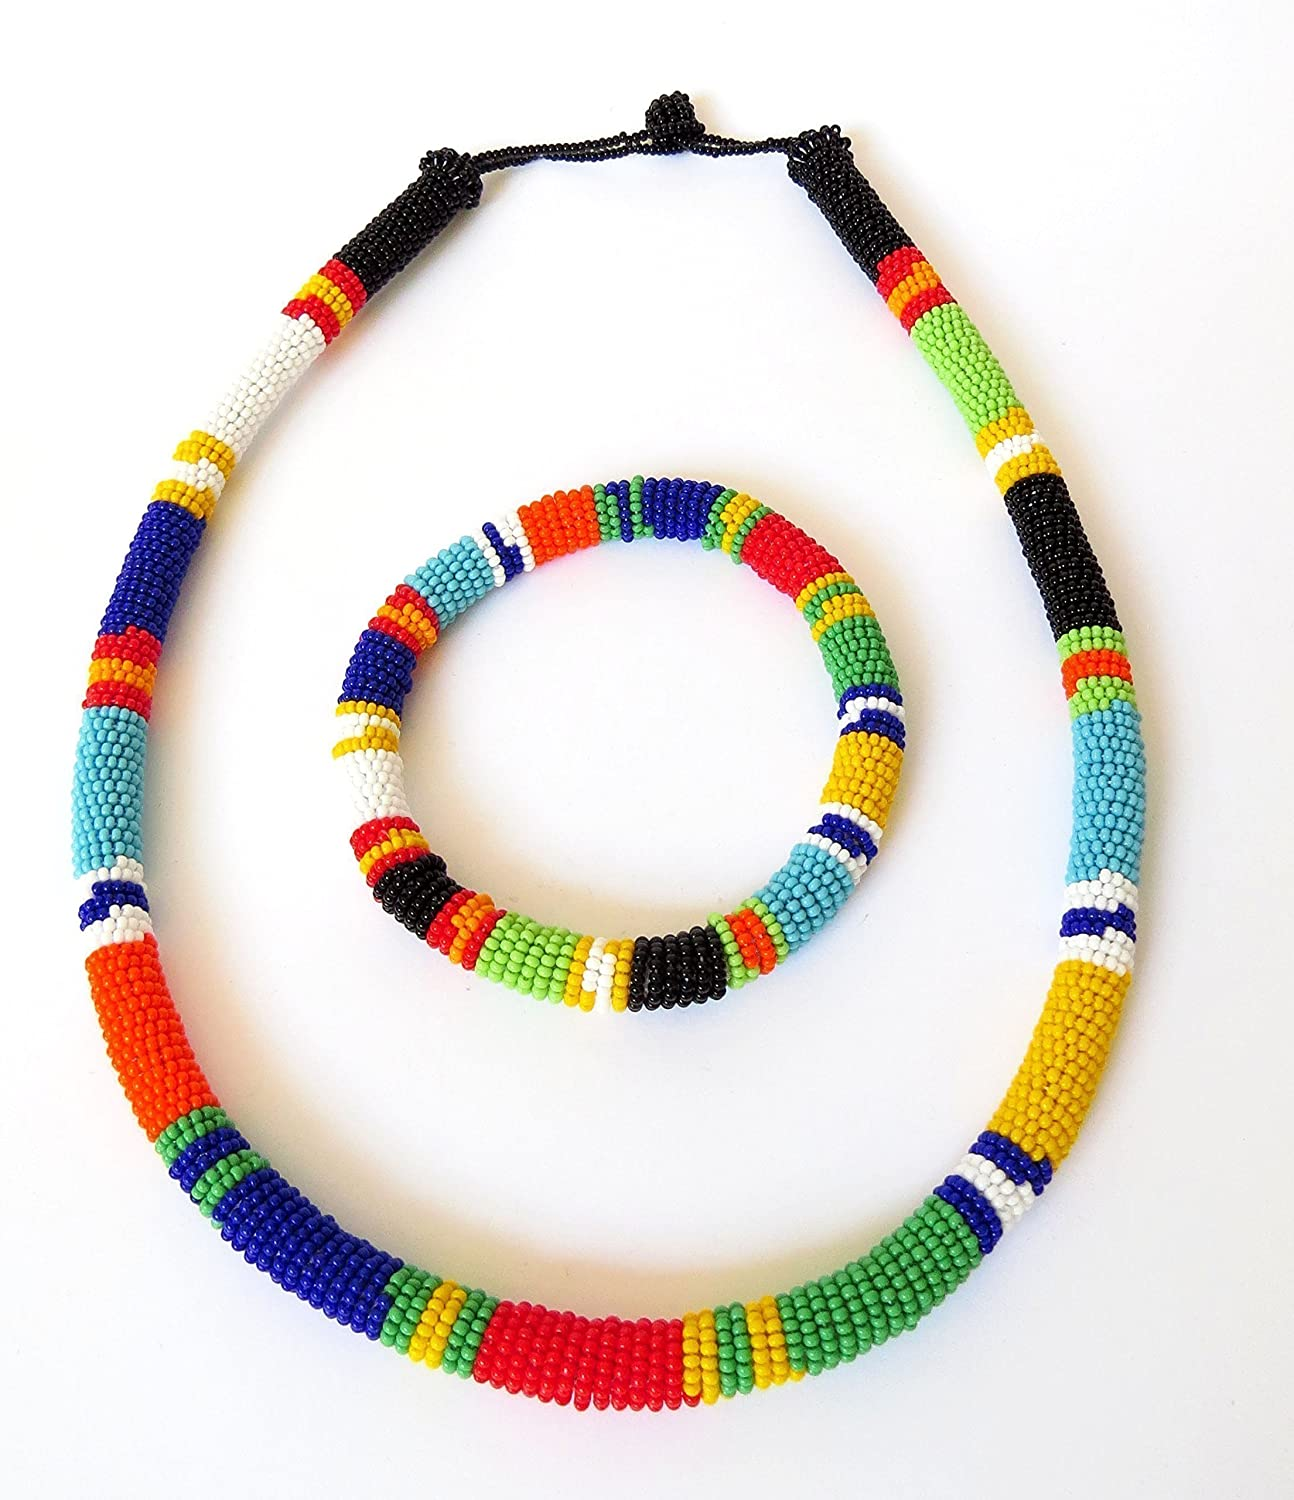 African Zulu beaded necklace and round bracelet set - Multicolour ONE - Gift for her 915EFE8VcXL